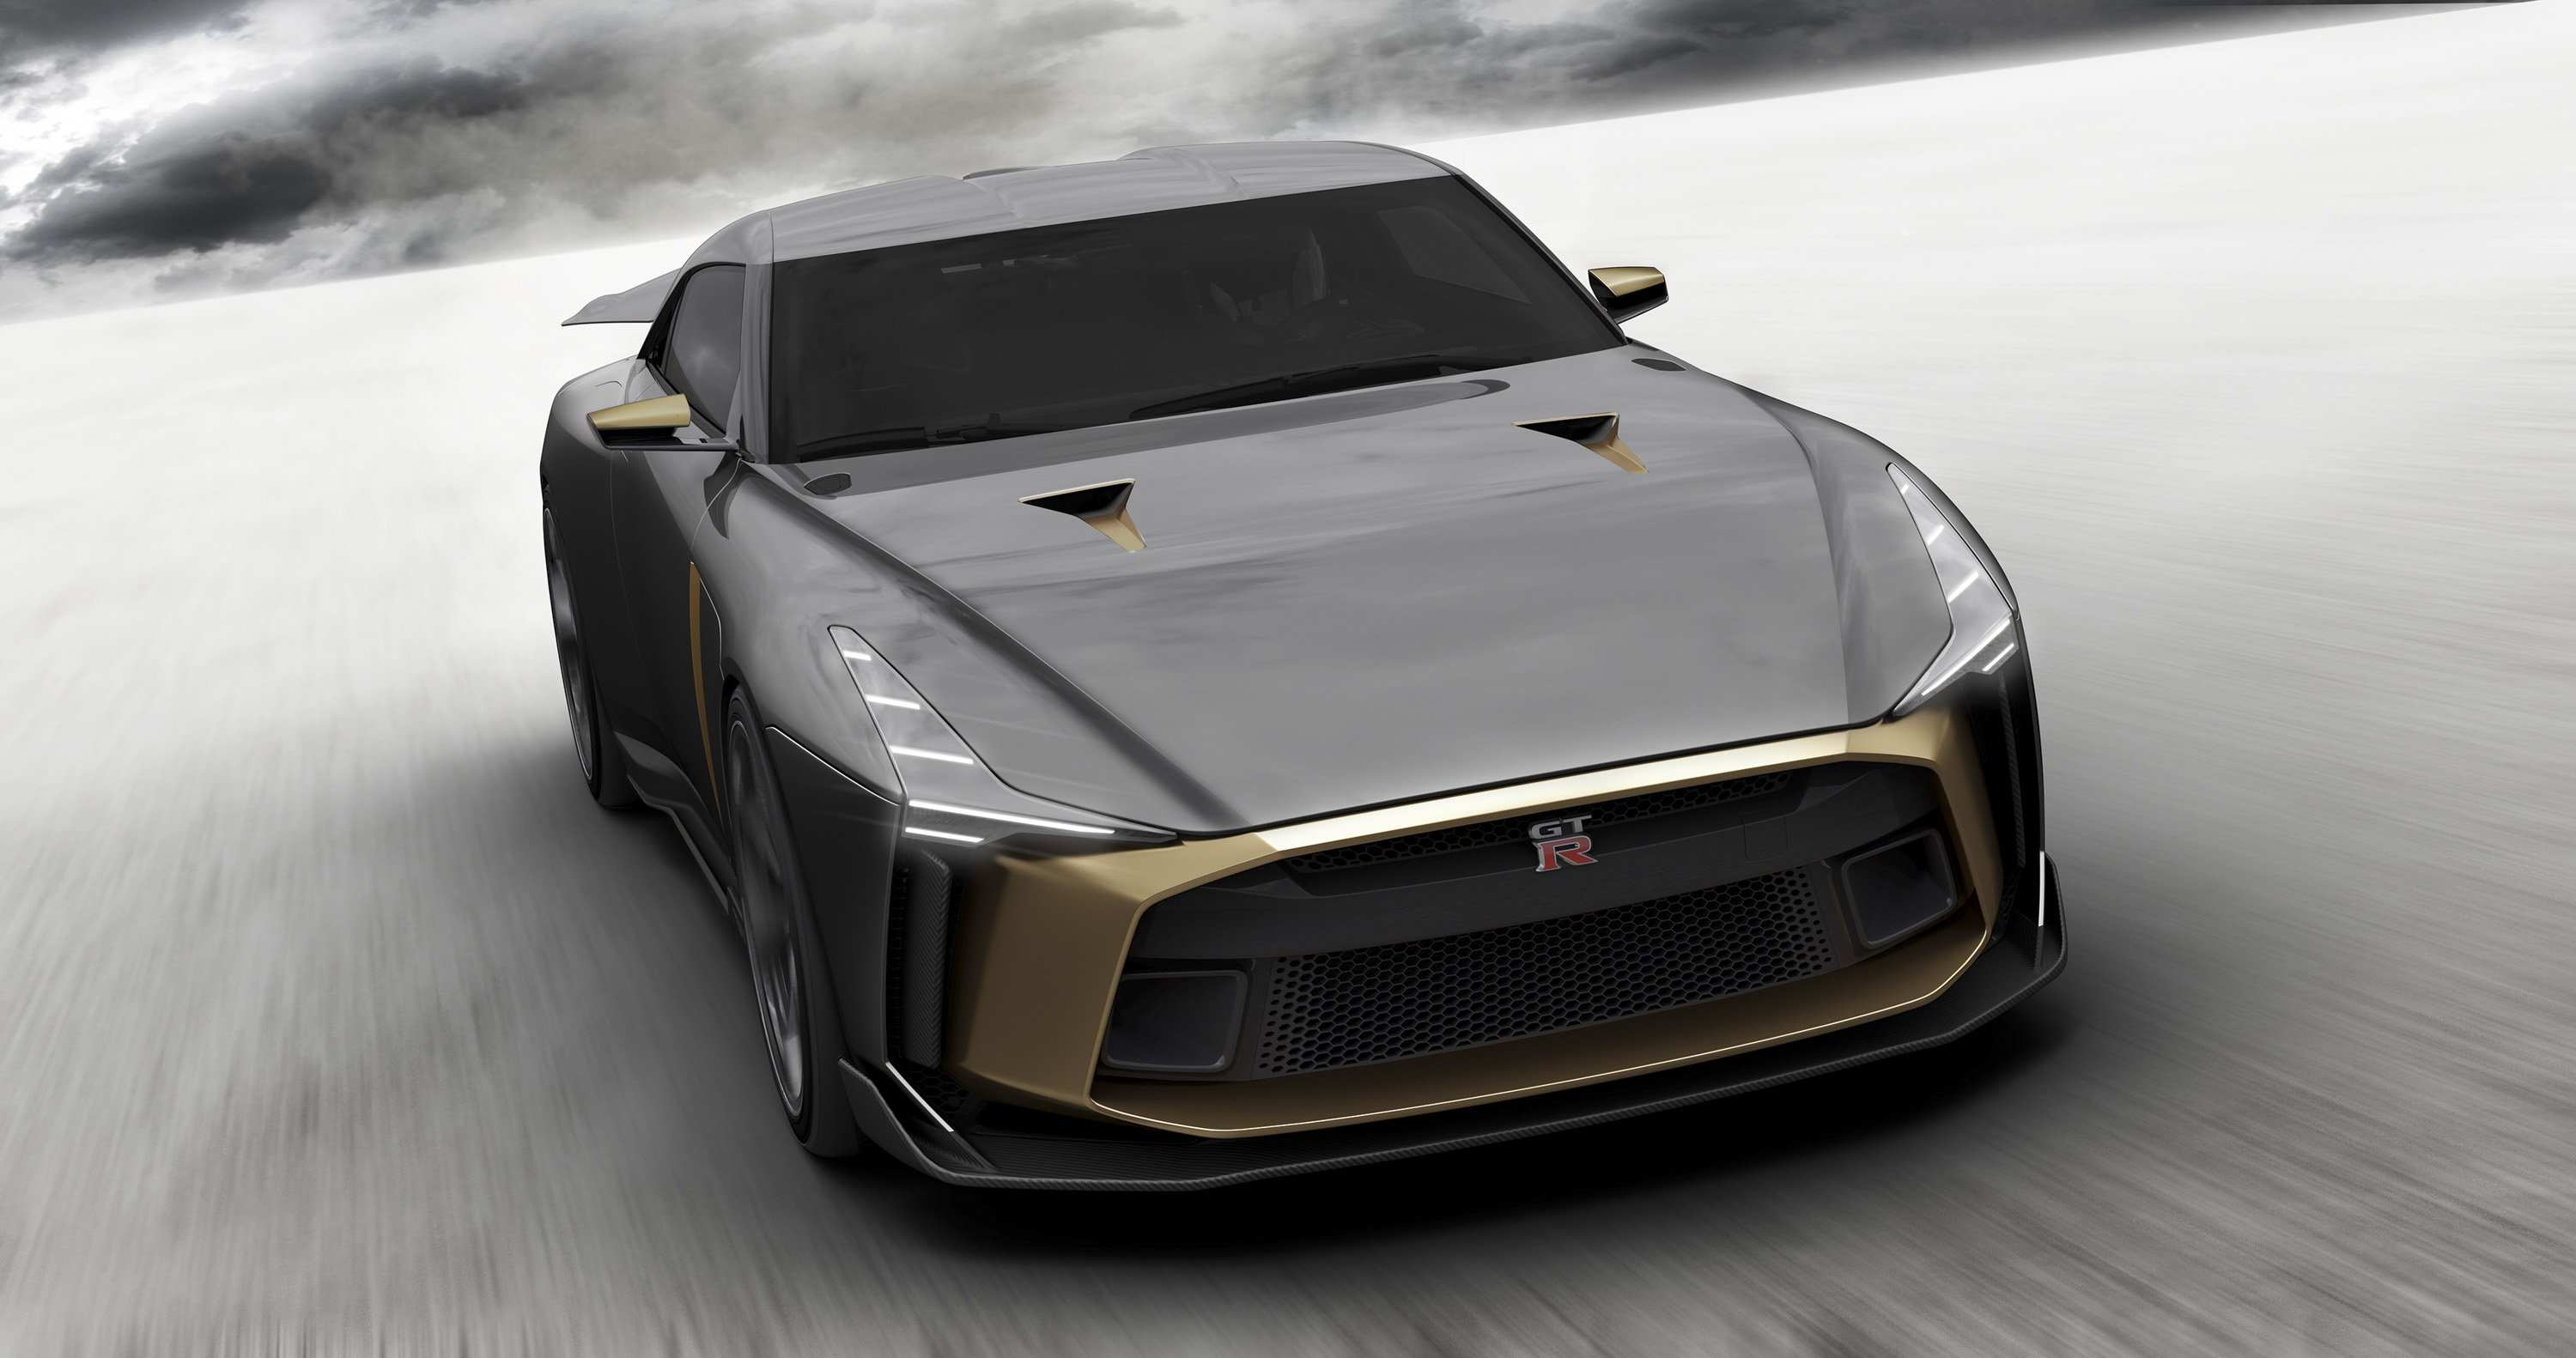 64 All New 2020 Nissan Gtr R36 Style for 2020 Nissan Gtr R36